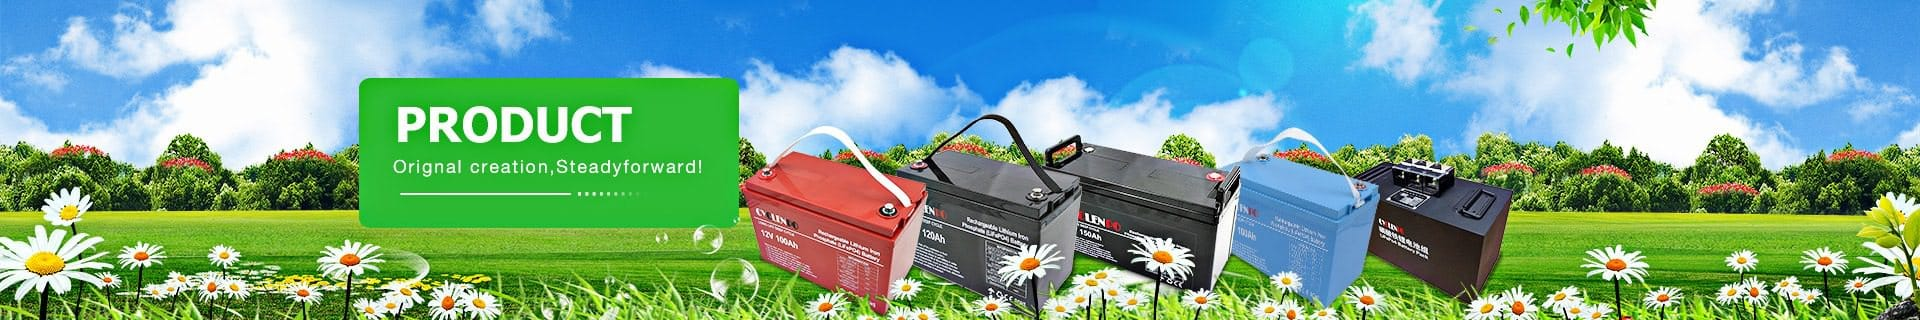 best lithium polymer battery, rc lipo batteries, 3.7 v lipo battery, polymer battery